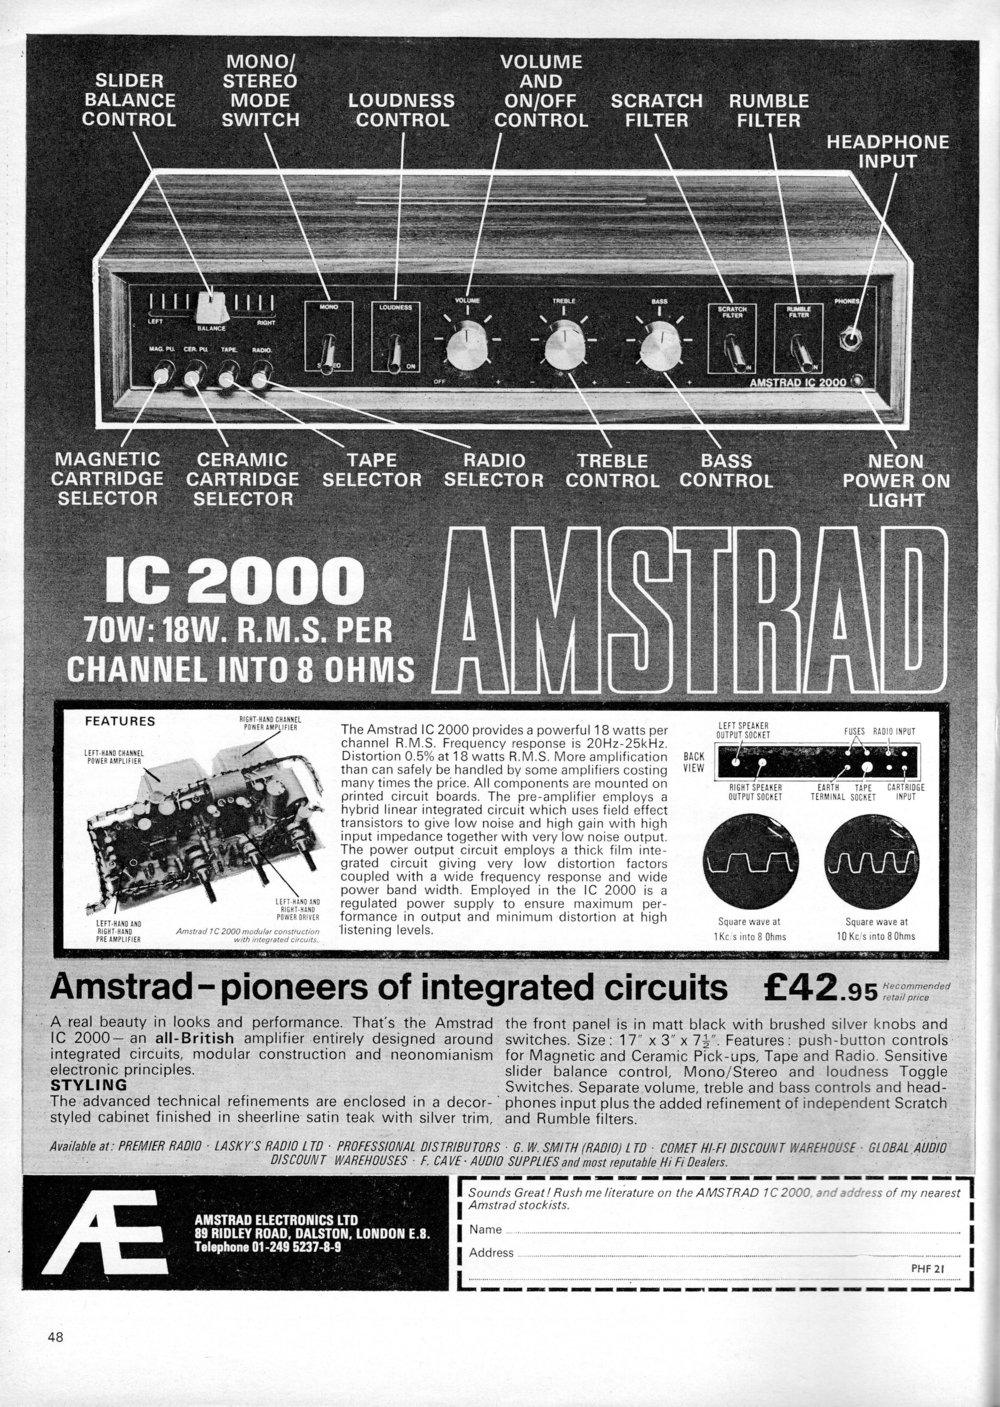 Amstrad Advert IC2000 1972.jpg